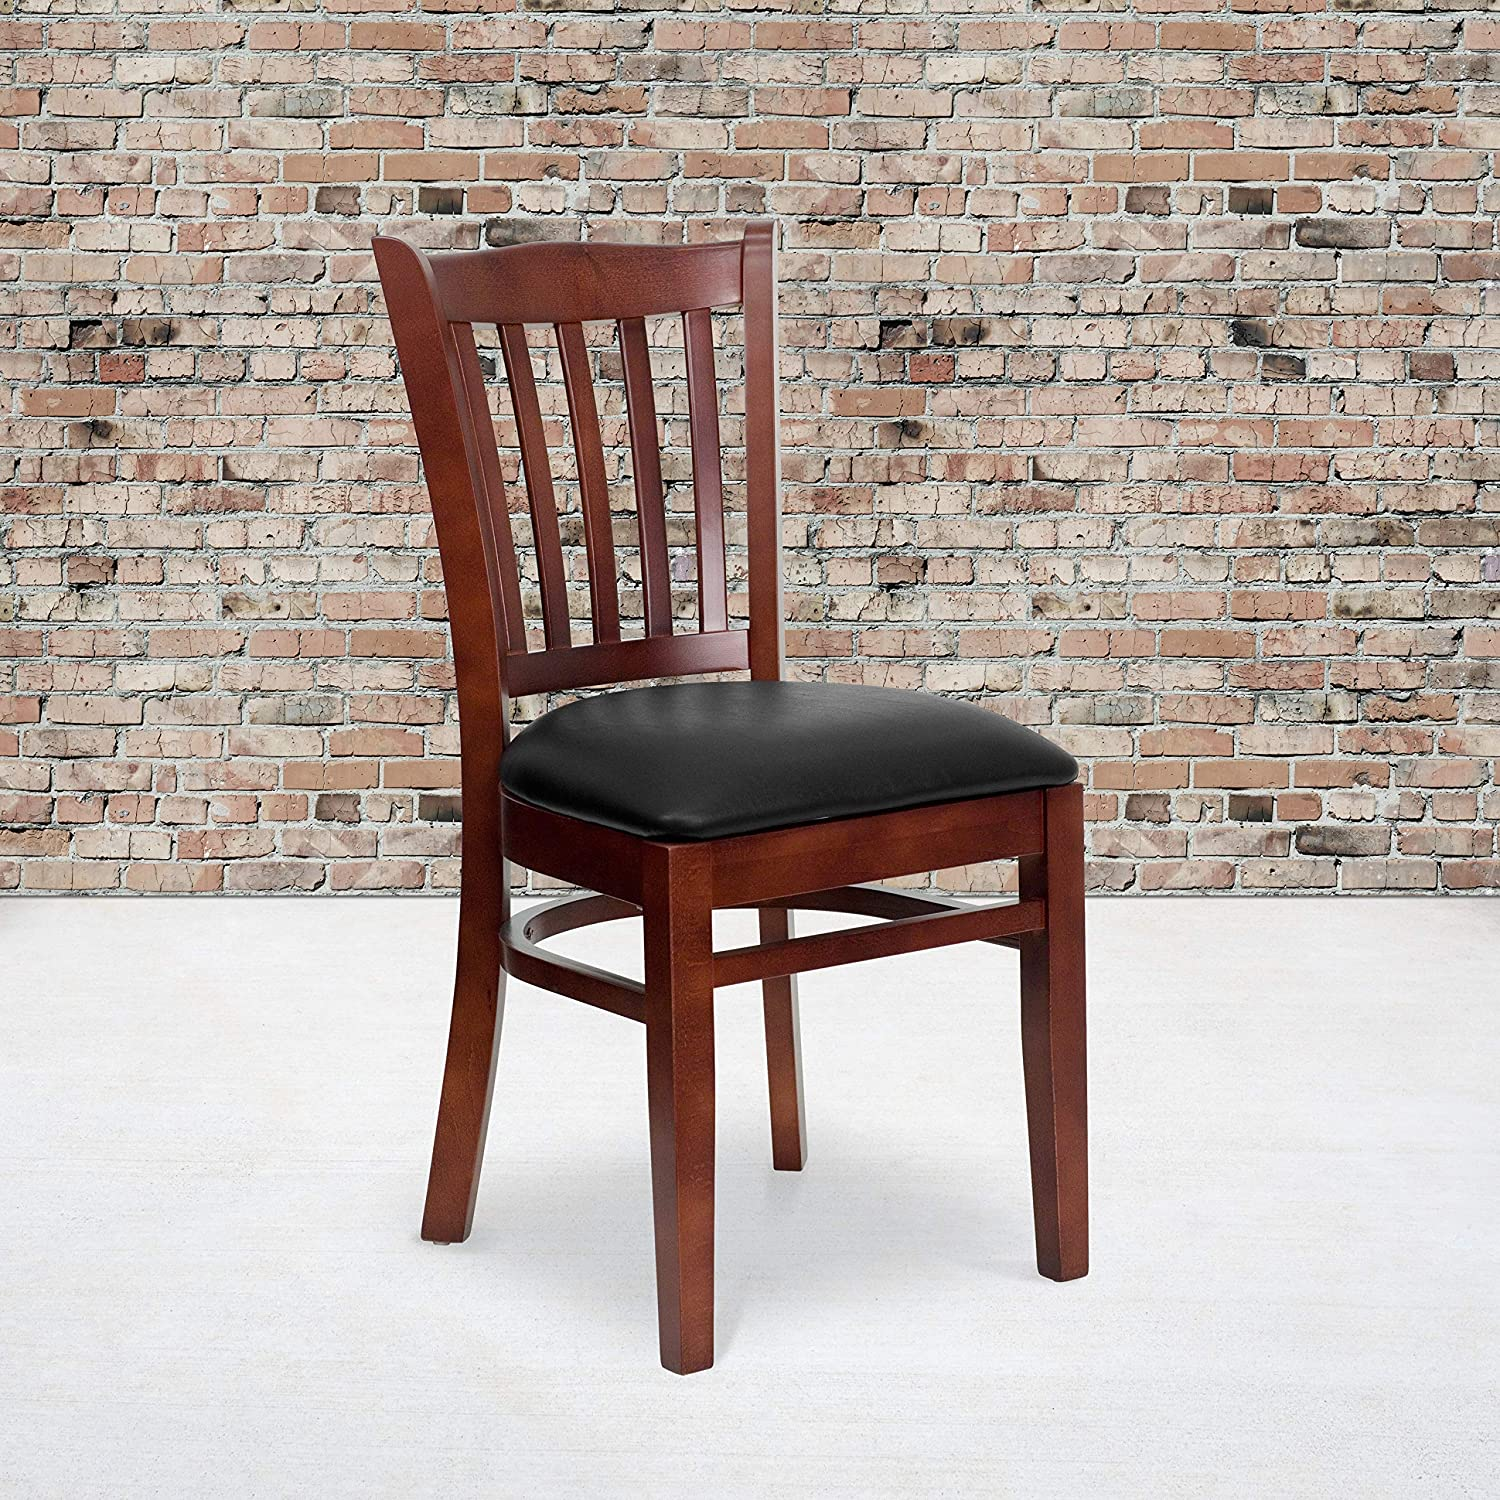 Flash Furniture HERCULES Series Vertical Slat Back Mahogany Wood Restaurant Chair - Black Vinyl Seat